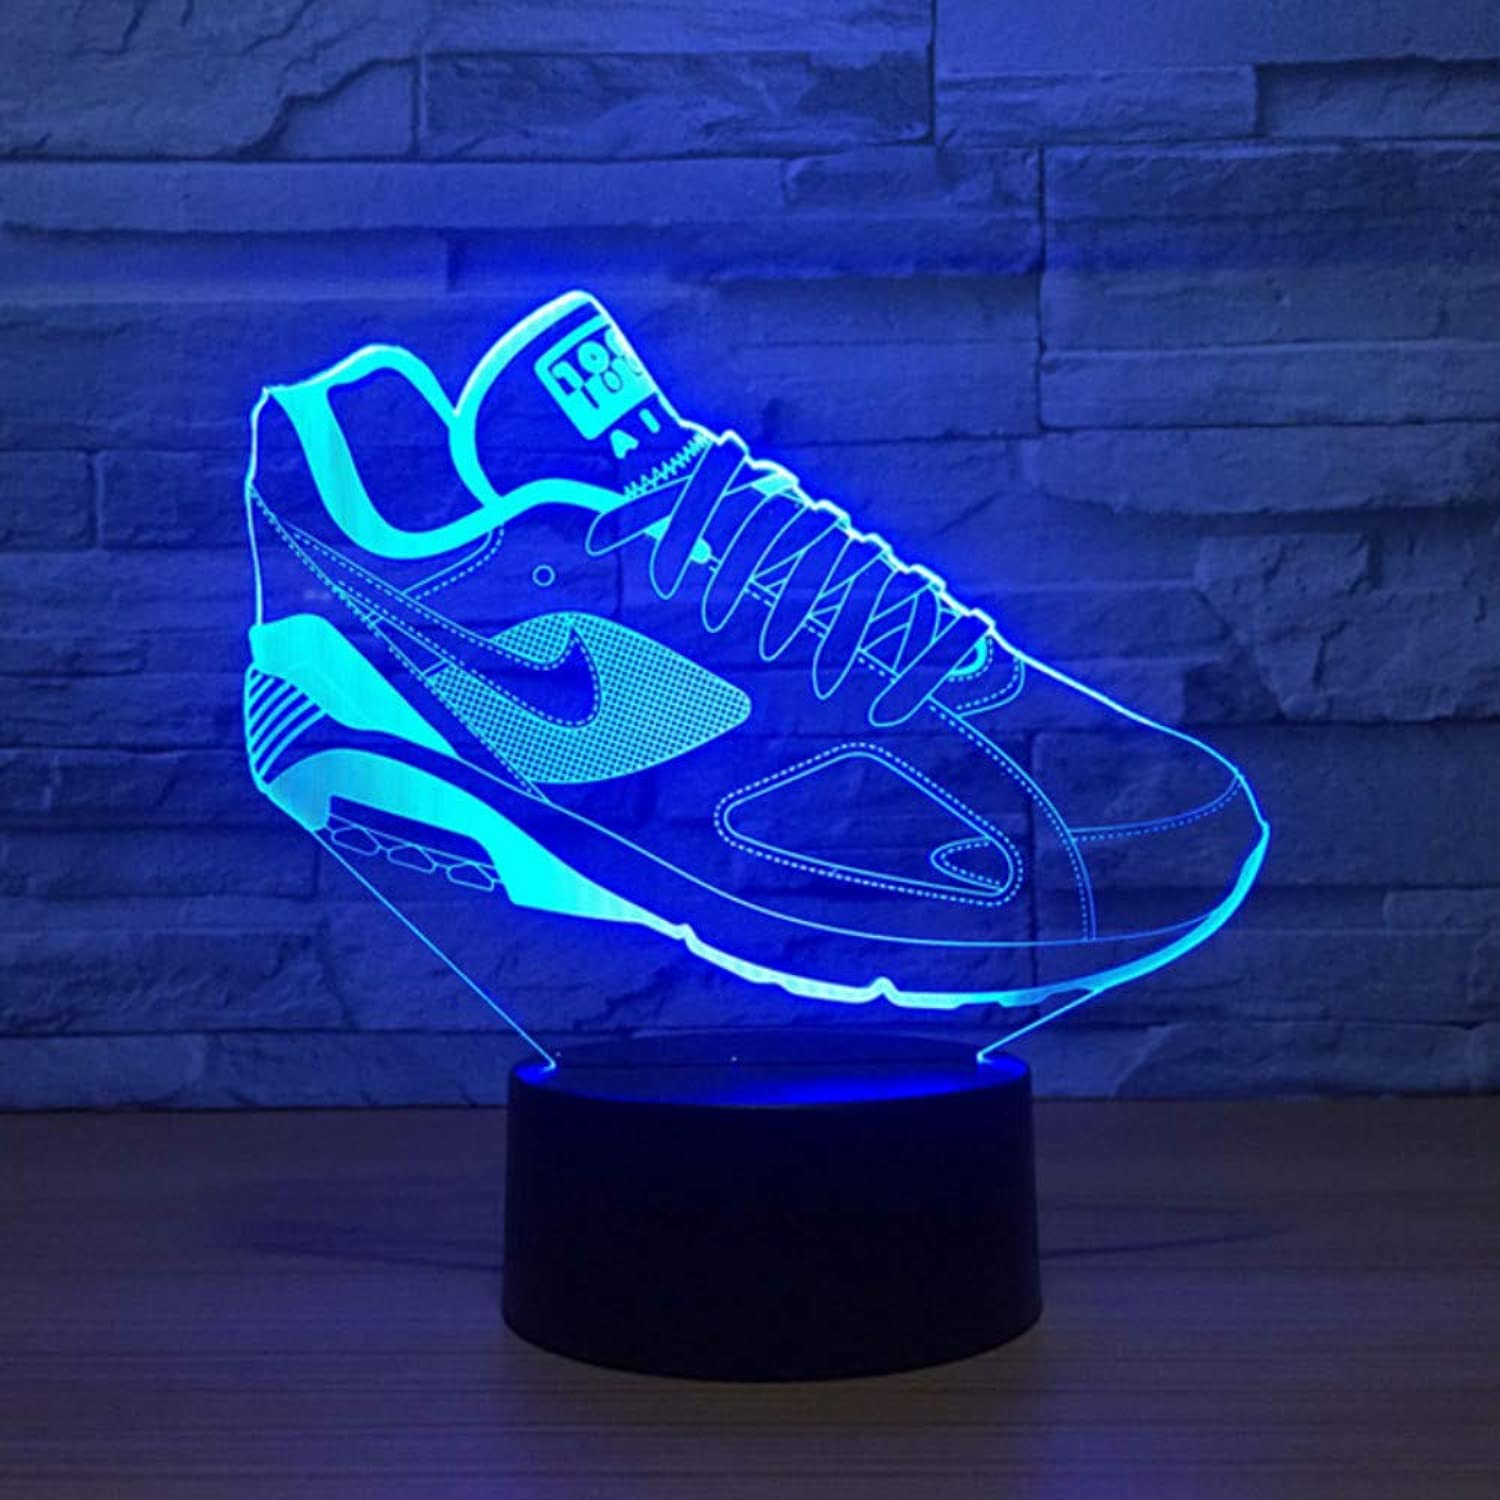 Zonxn 7 colors Change 3D Led Visual Atmosphere Lighting Decor shoes Modelling Table Lamp USB Sports Fans Touch Switch Nightlight Gifts